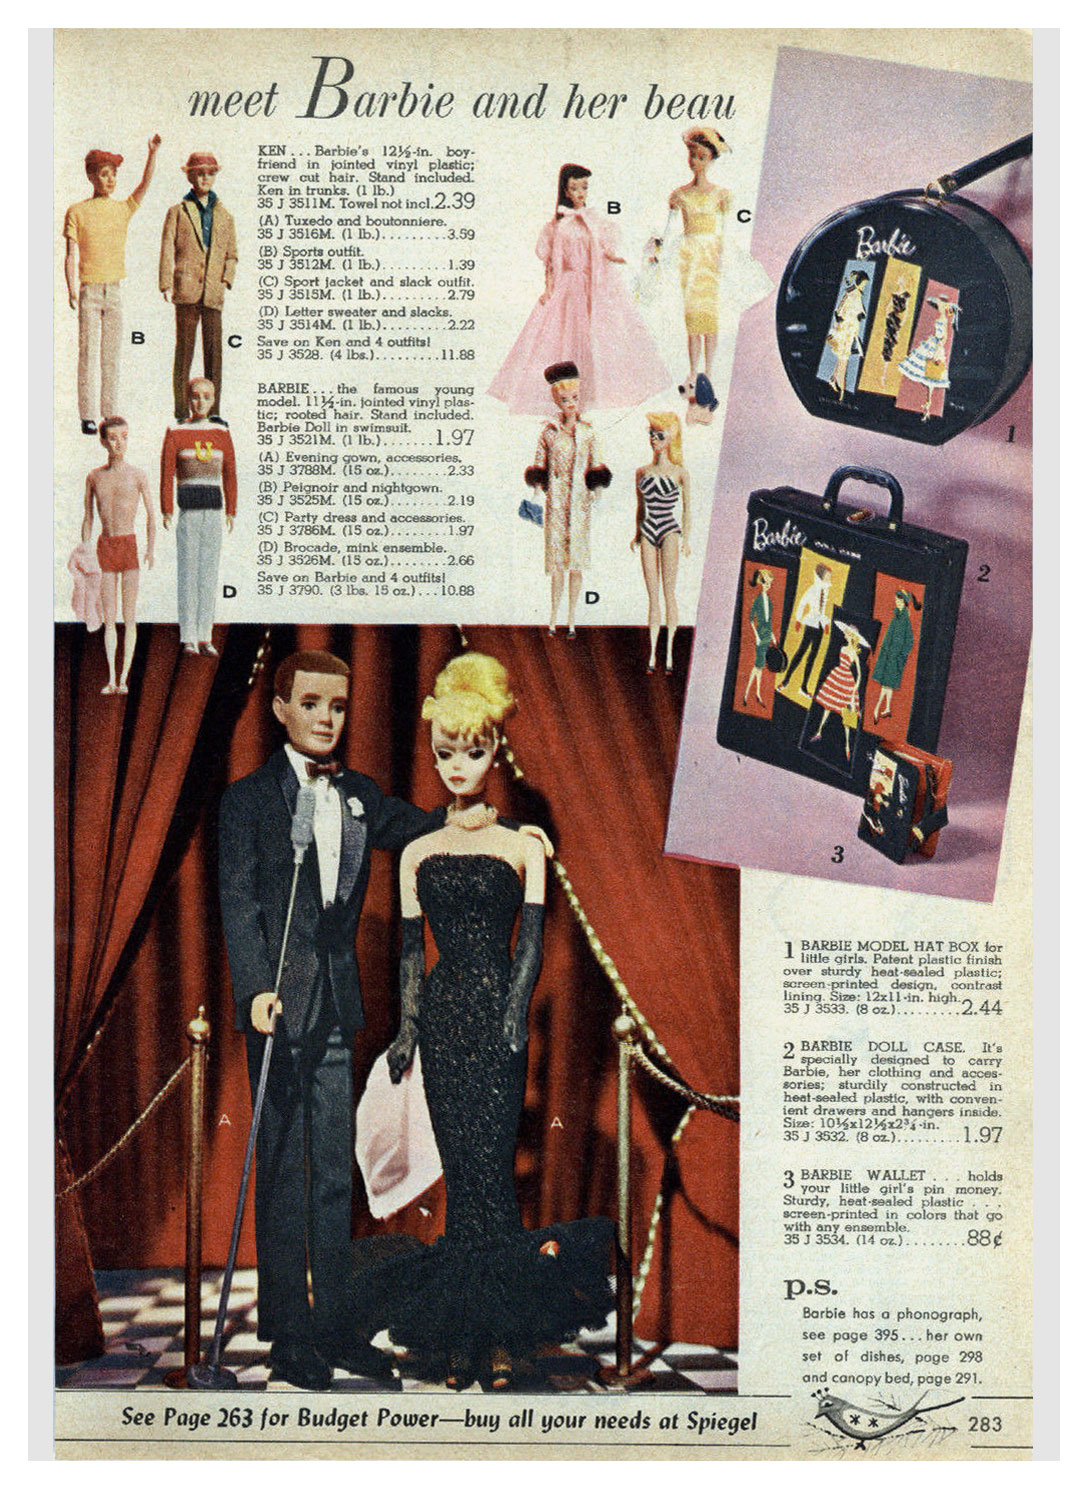 From 1961 Spiegel Christmas catalogue